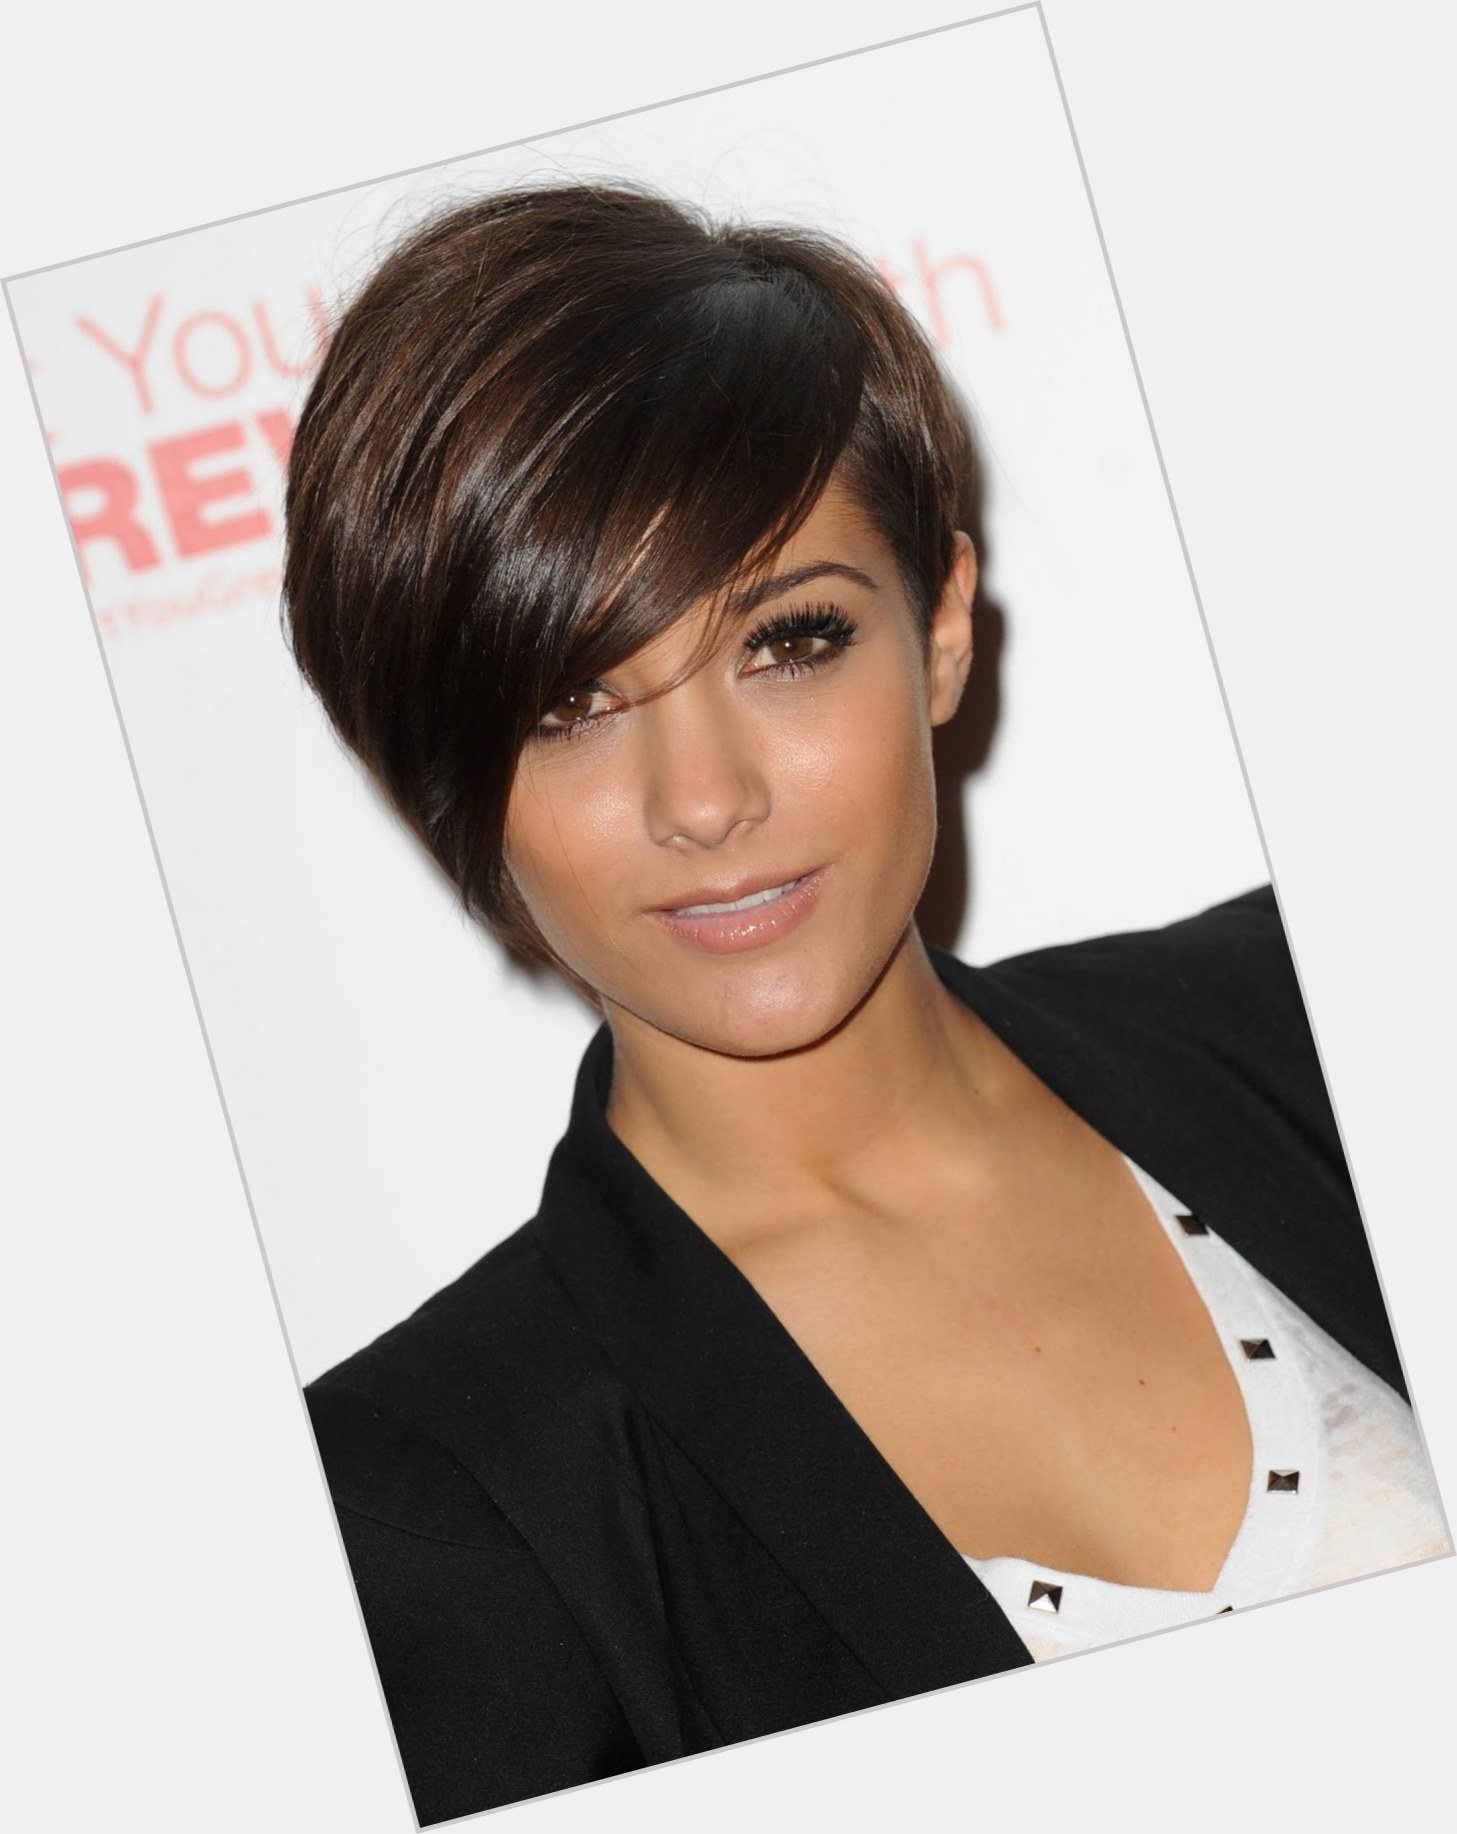 Frankie Sandford birthday 2015